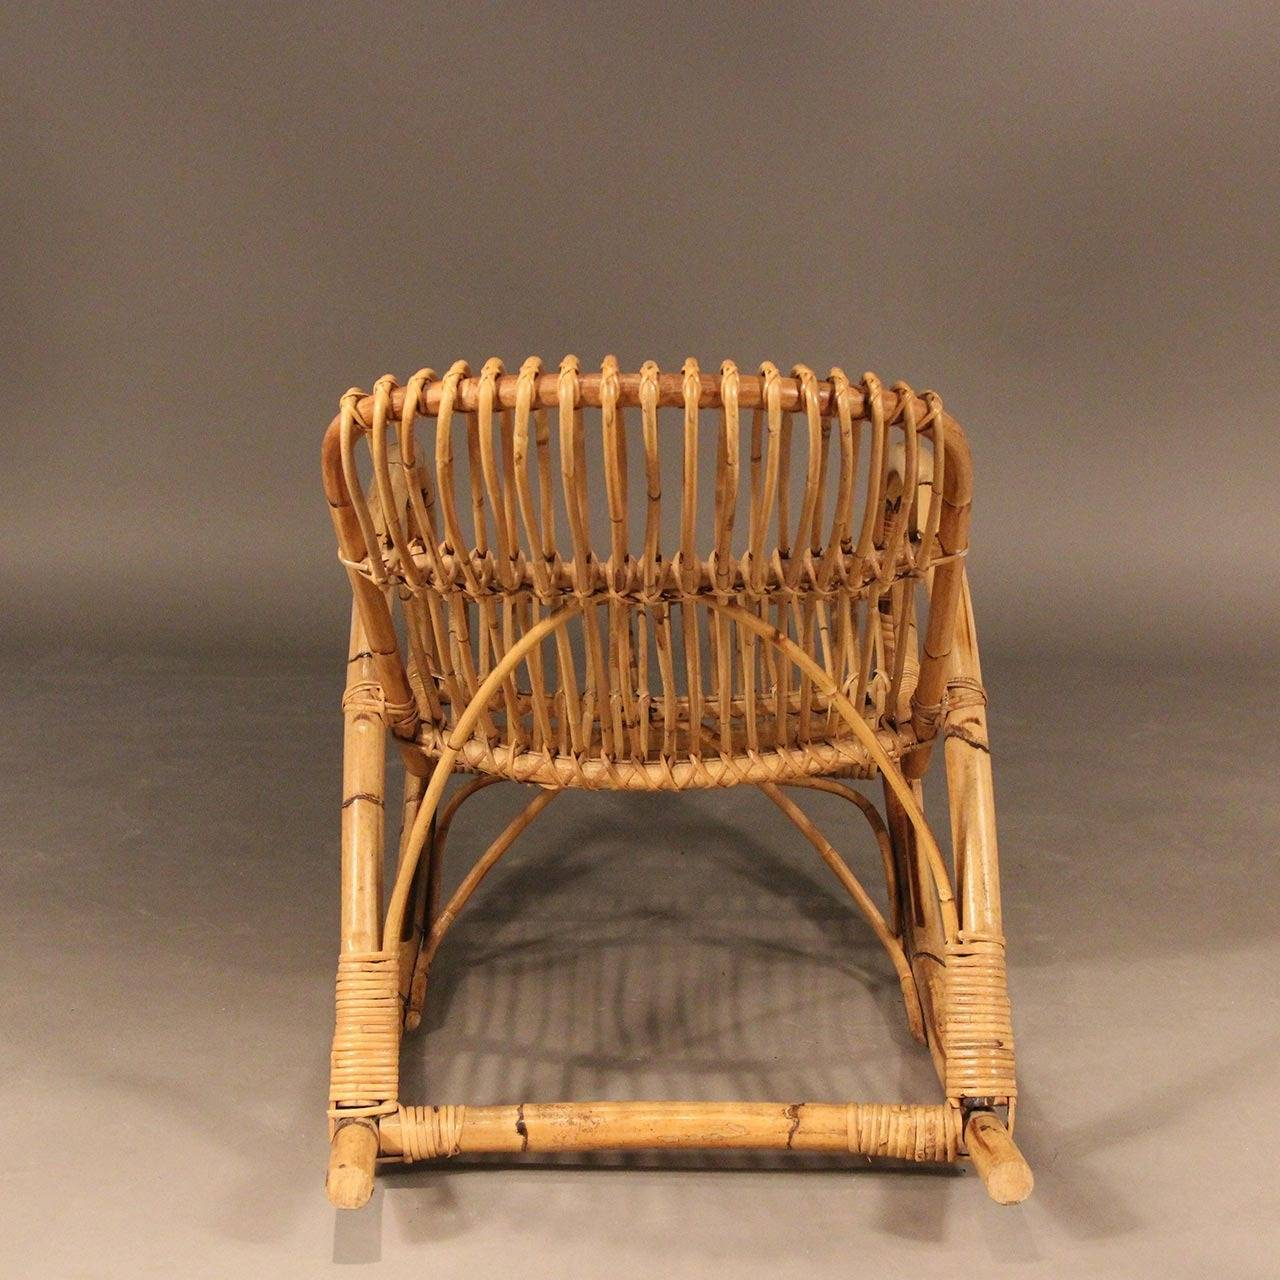 Groovy Franco Albini Style Mid Century Rattan Rocking Chair For Gmtry Best Dining Table And Chair Ideas Images Gmtryco